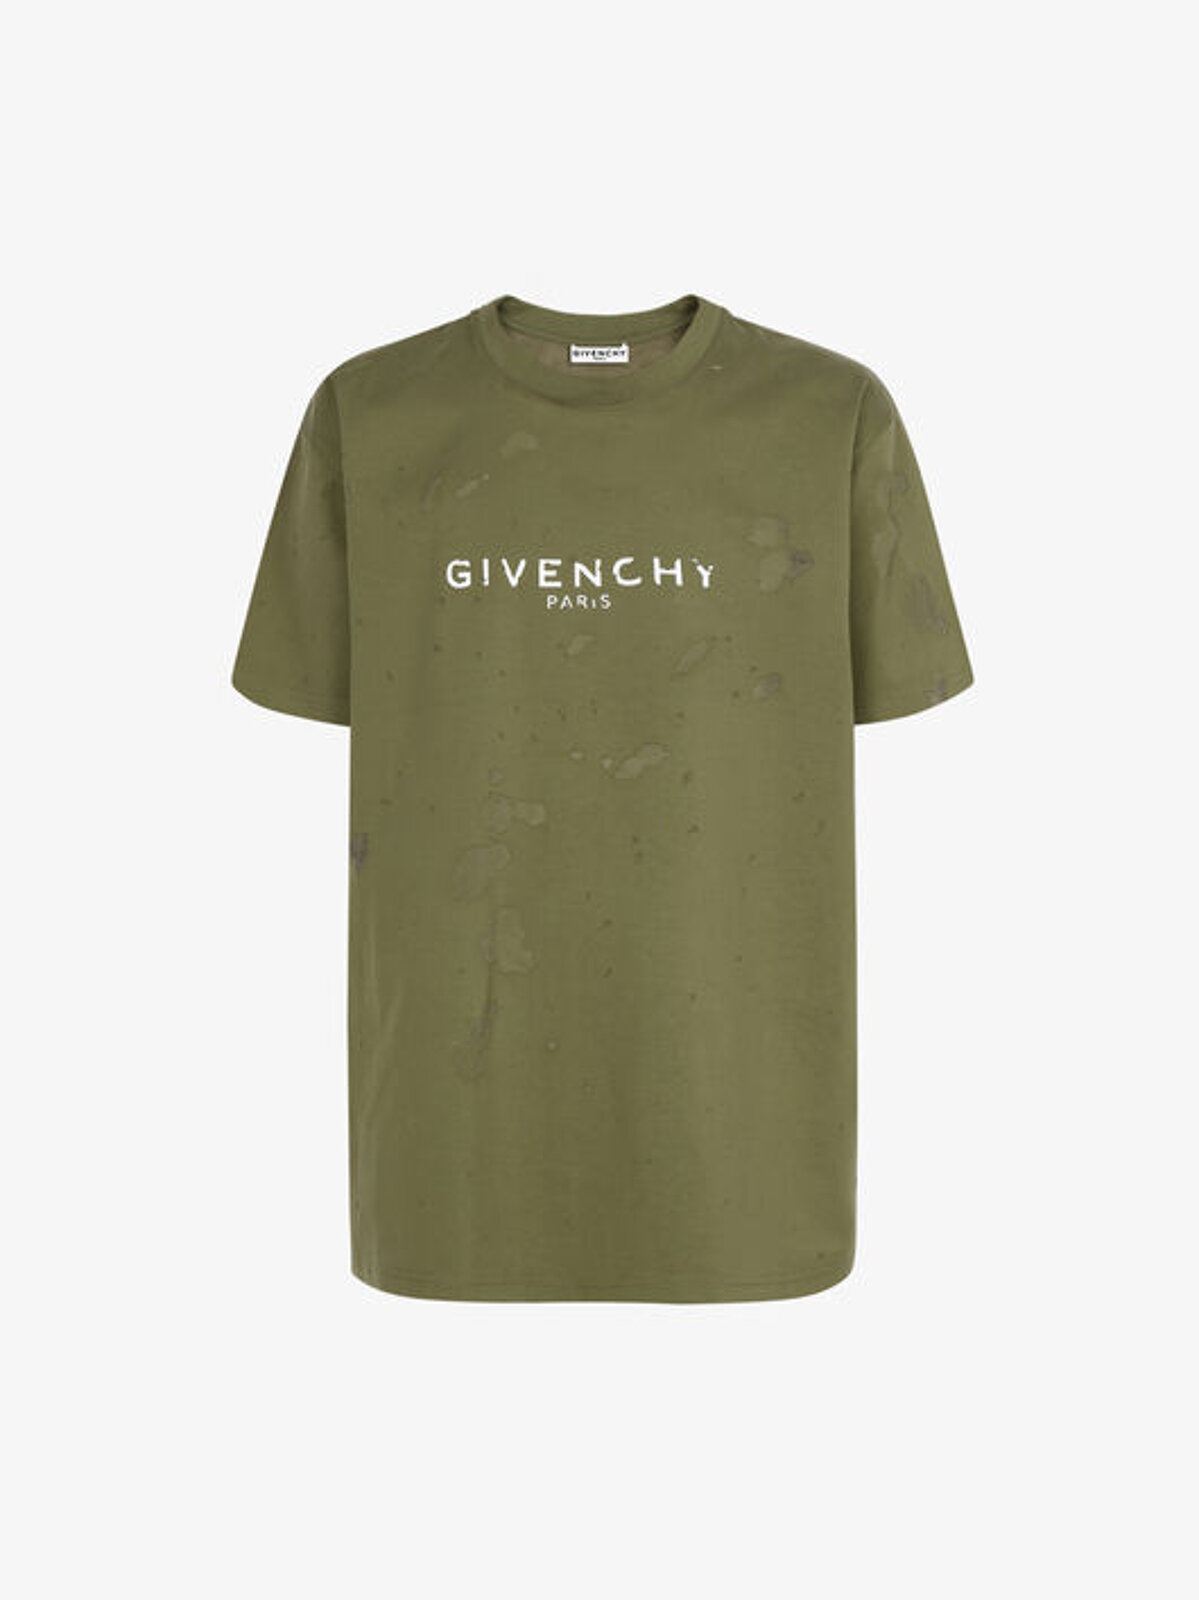 T-Shirt Givenchy Paris Effetto Destroyed - Givenchy